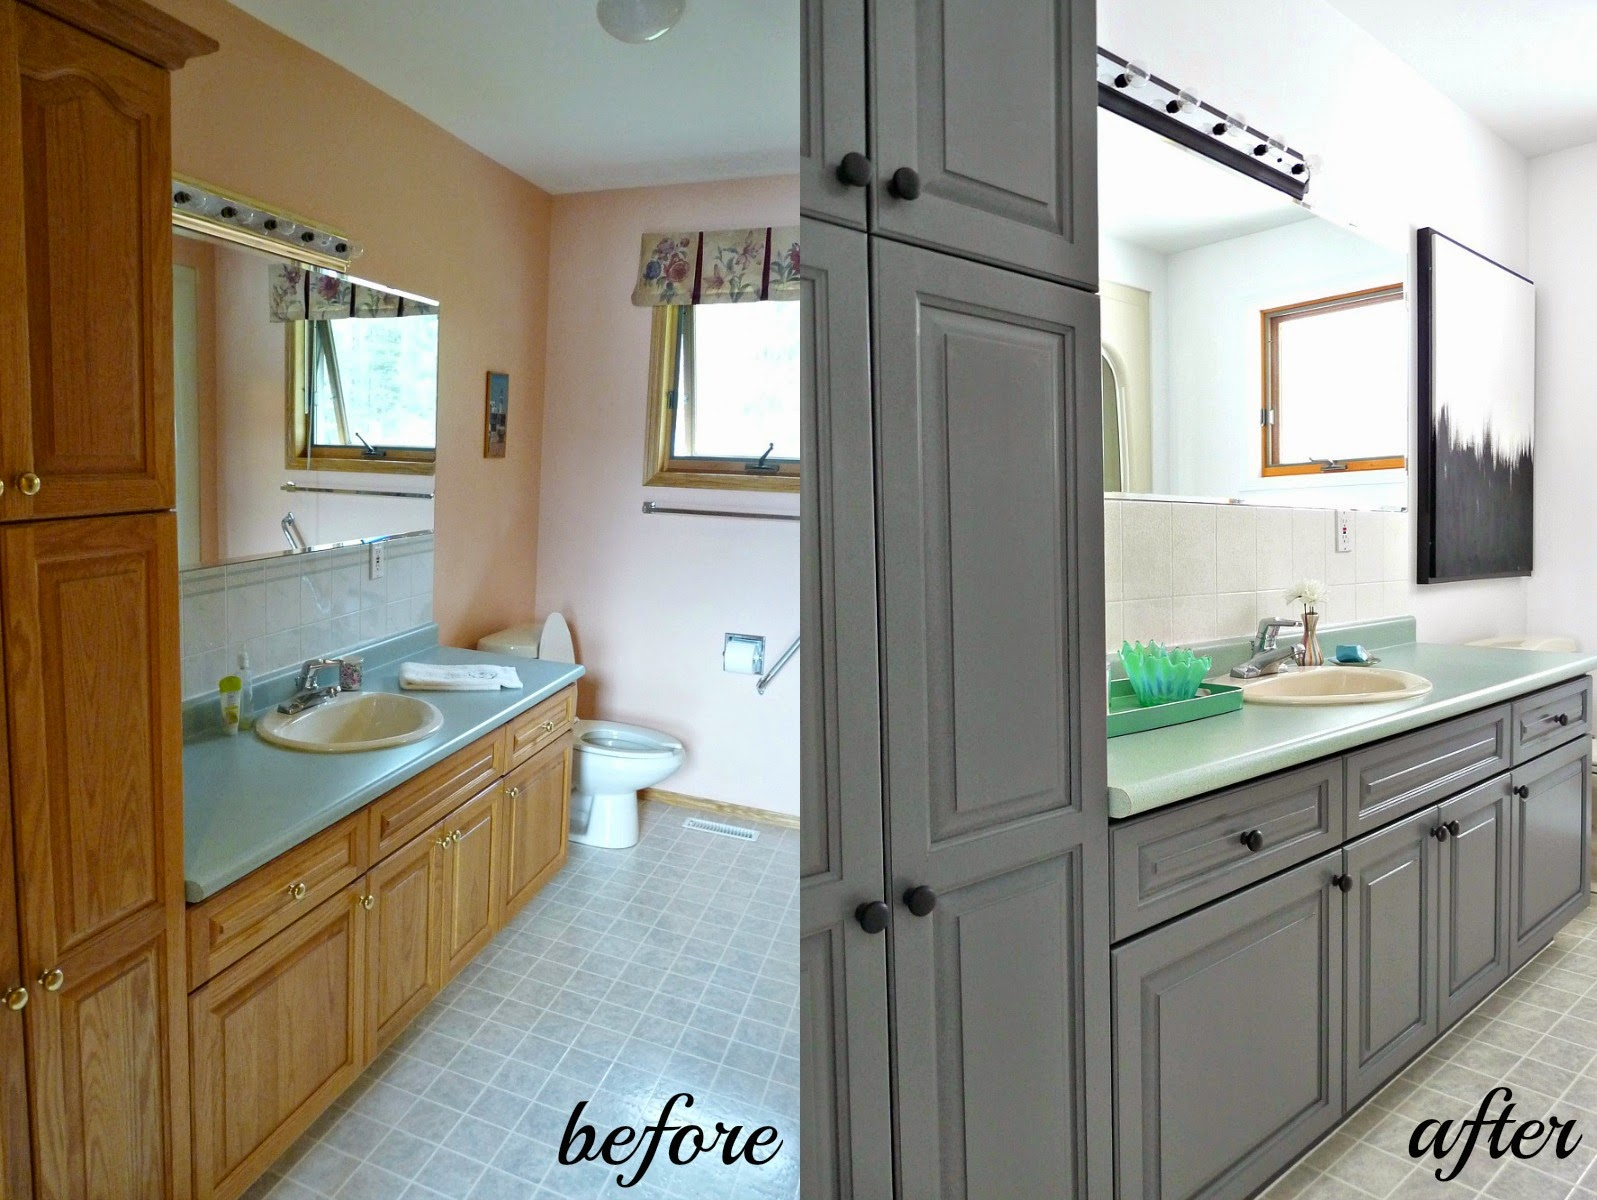 Painting Bathroom Cabinets Gray cabinet refinishing 101: latex paint vs. stain vs. rust-oleum